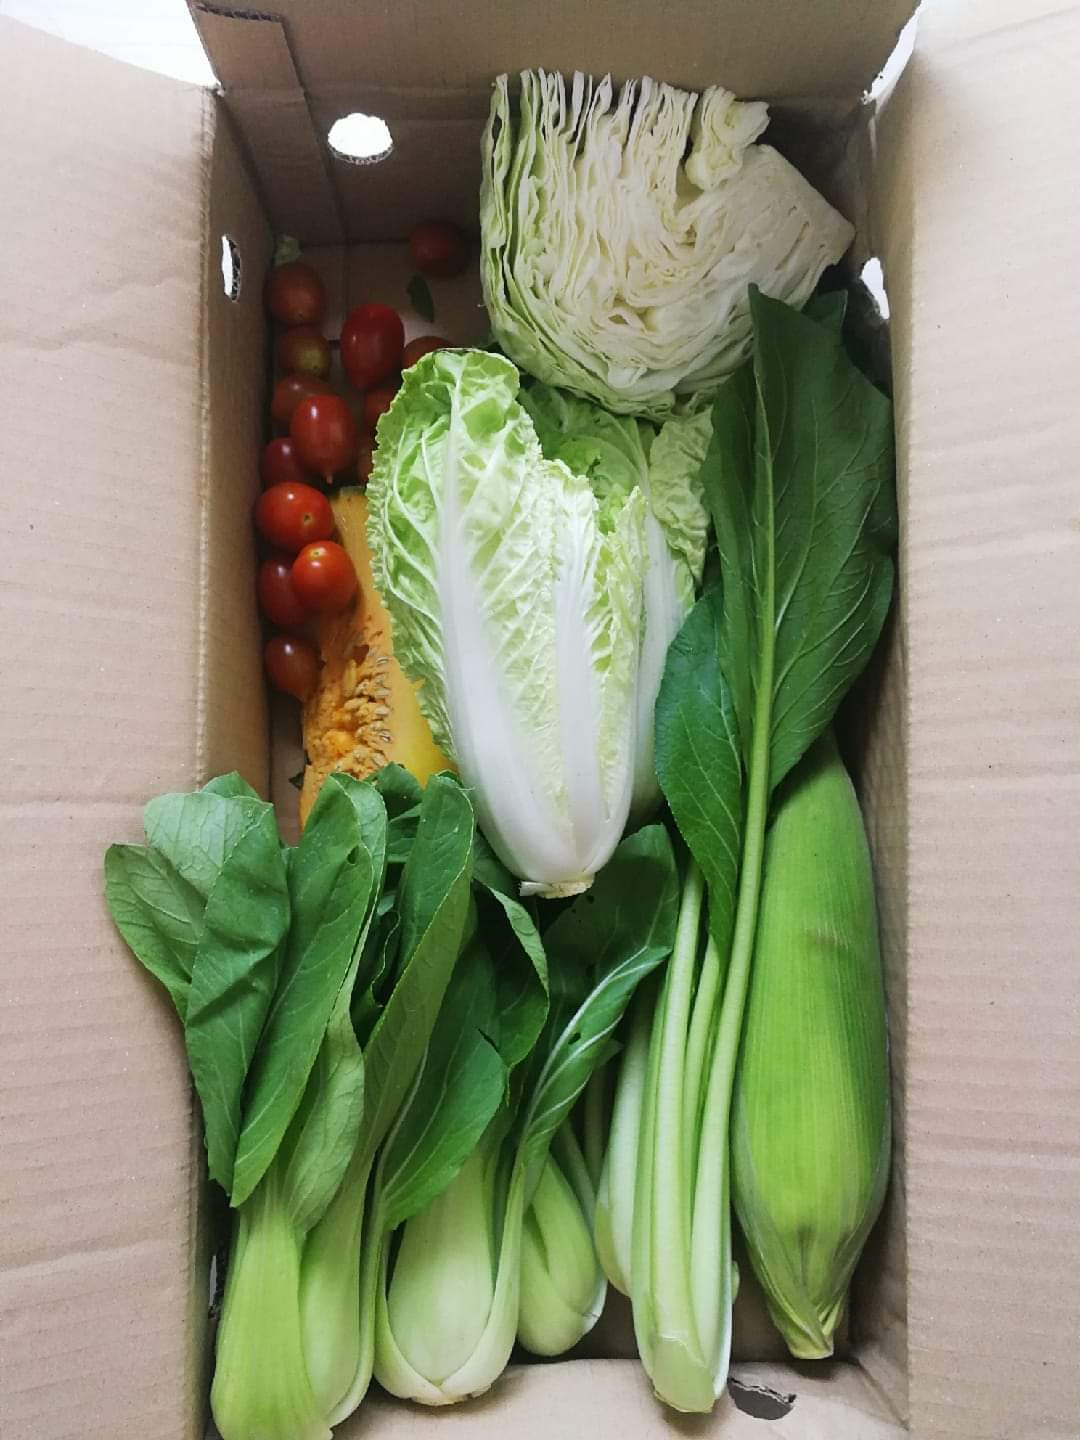 Weekly Organic / Bio-Dynamic Vegetable Box - Farmz